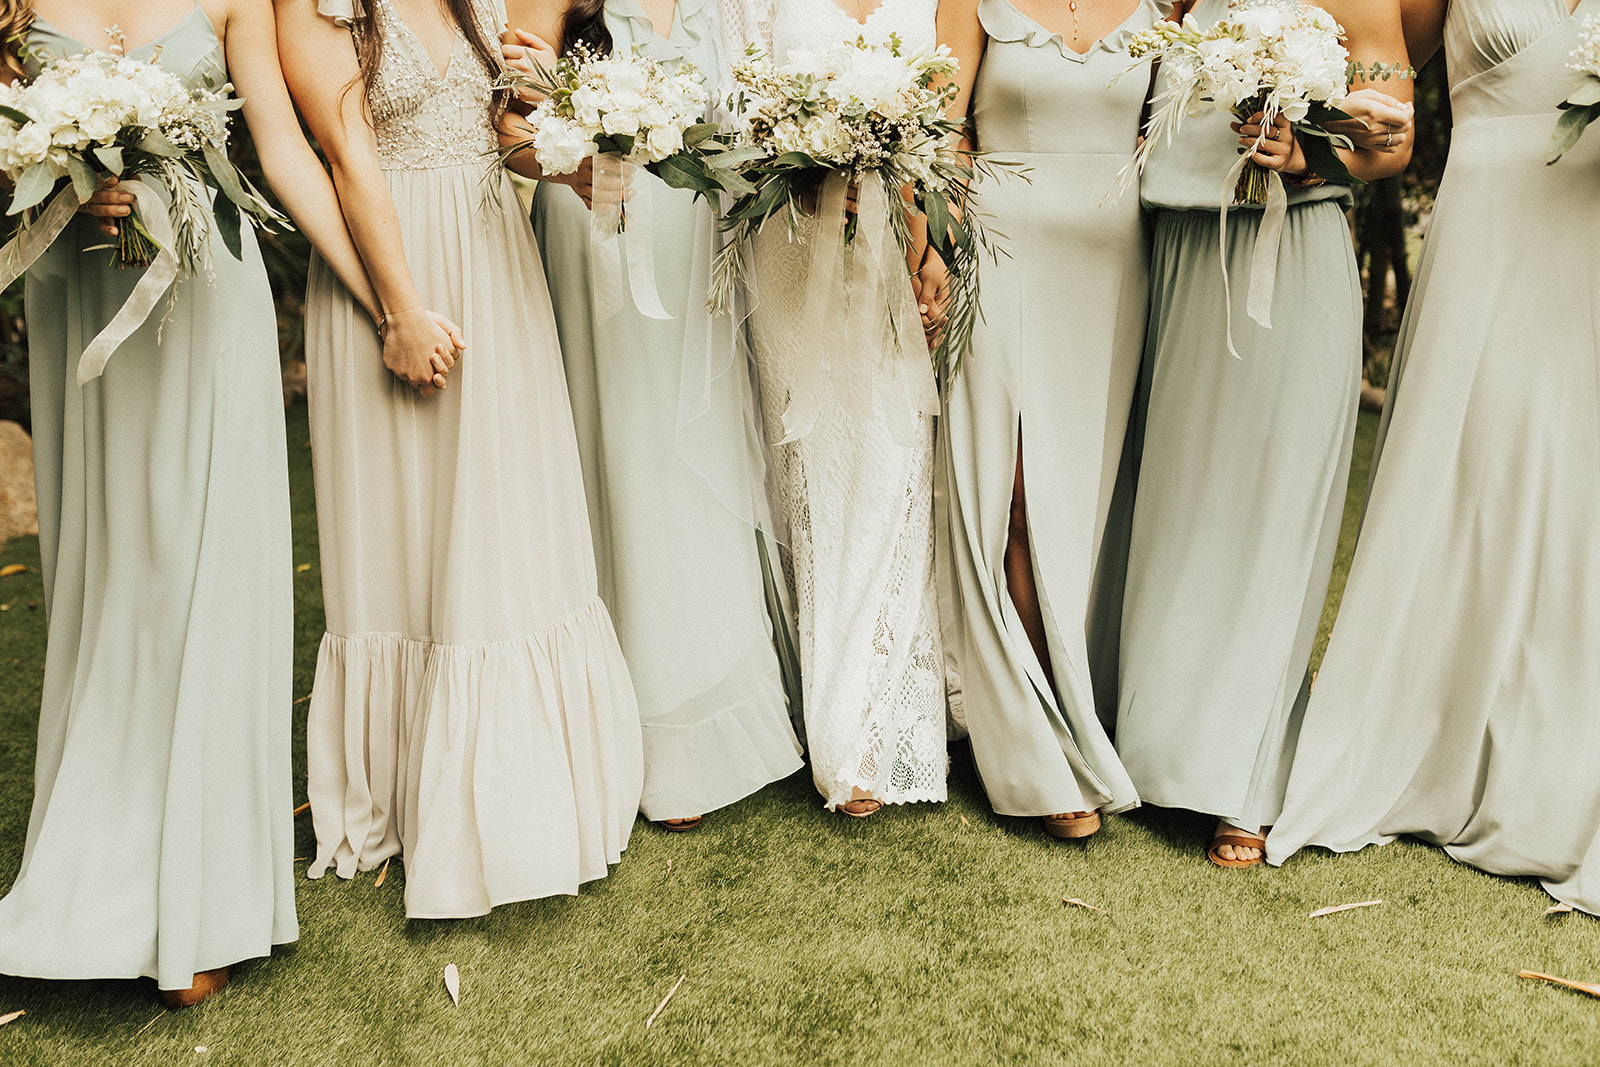 This lovely textured white wedding was a blast! I loved working with this wide variety of whites, creams and yellowed greens to create this multi-dimensional bohemian look.